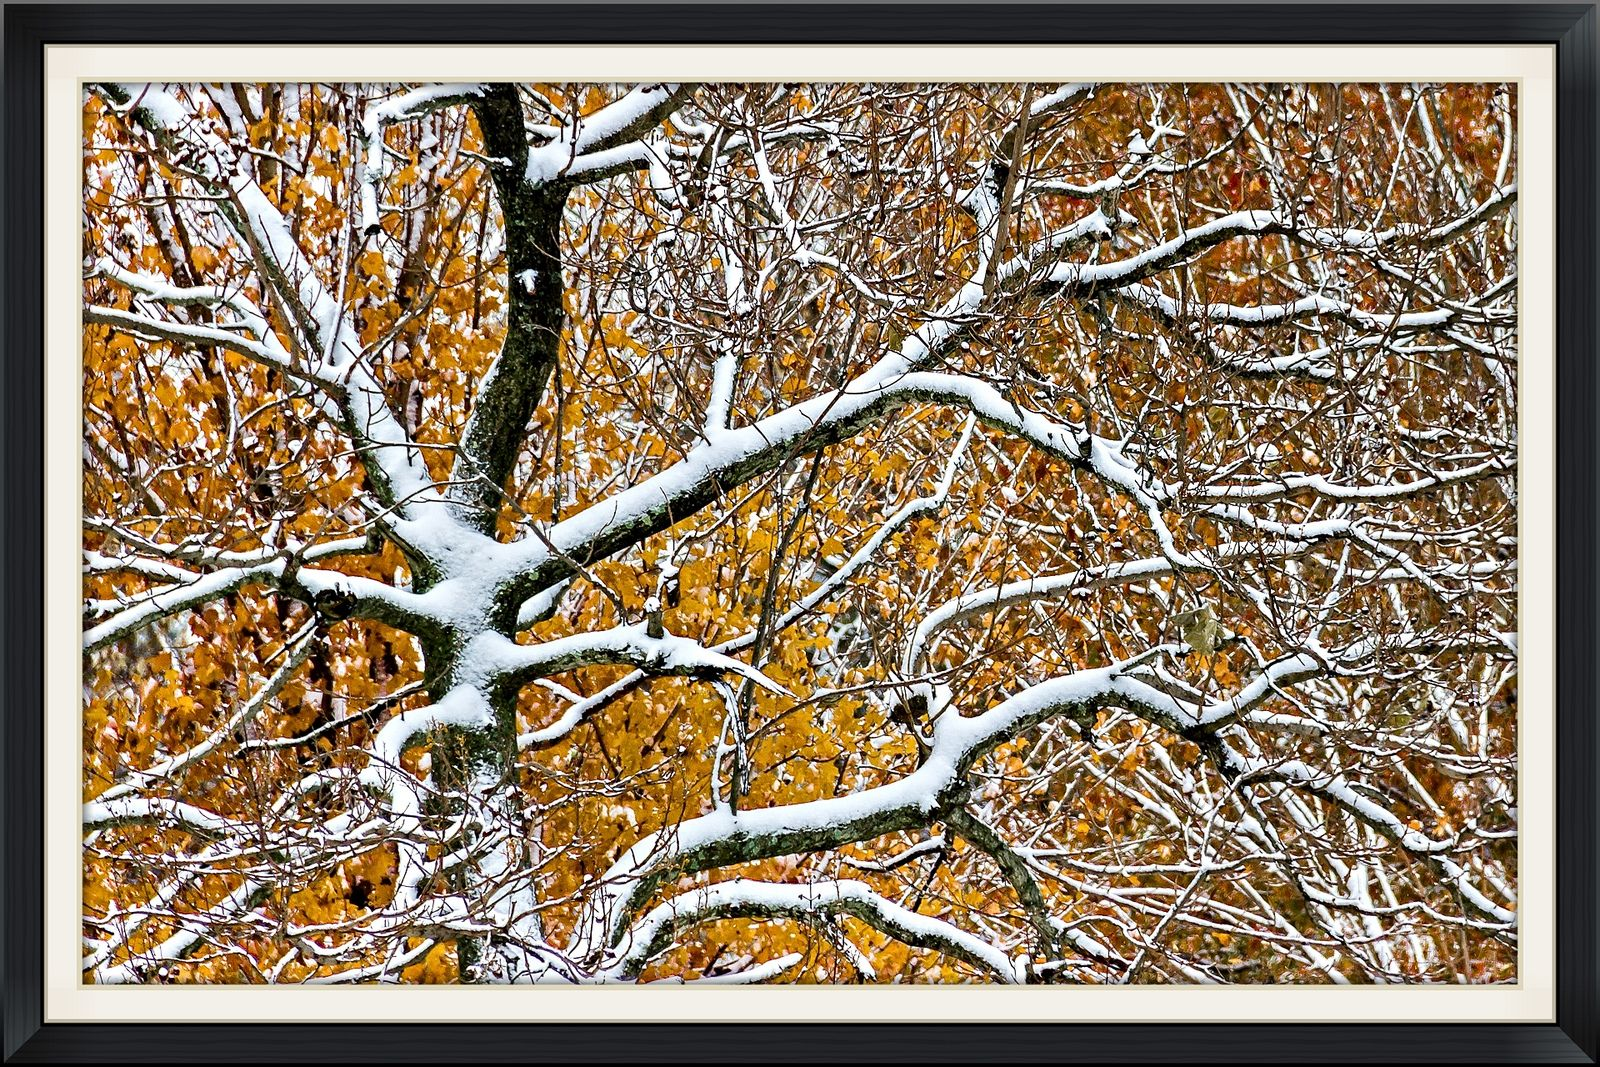 https://flic.kr/p/pNY9yD | Winter in Autum | Early snow and a late Autumn got together to make a magical image.